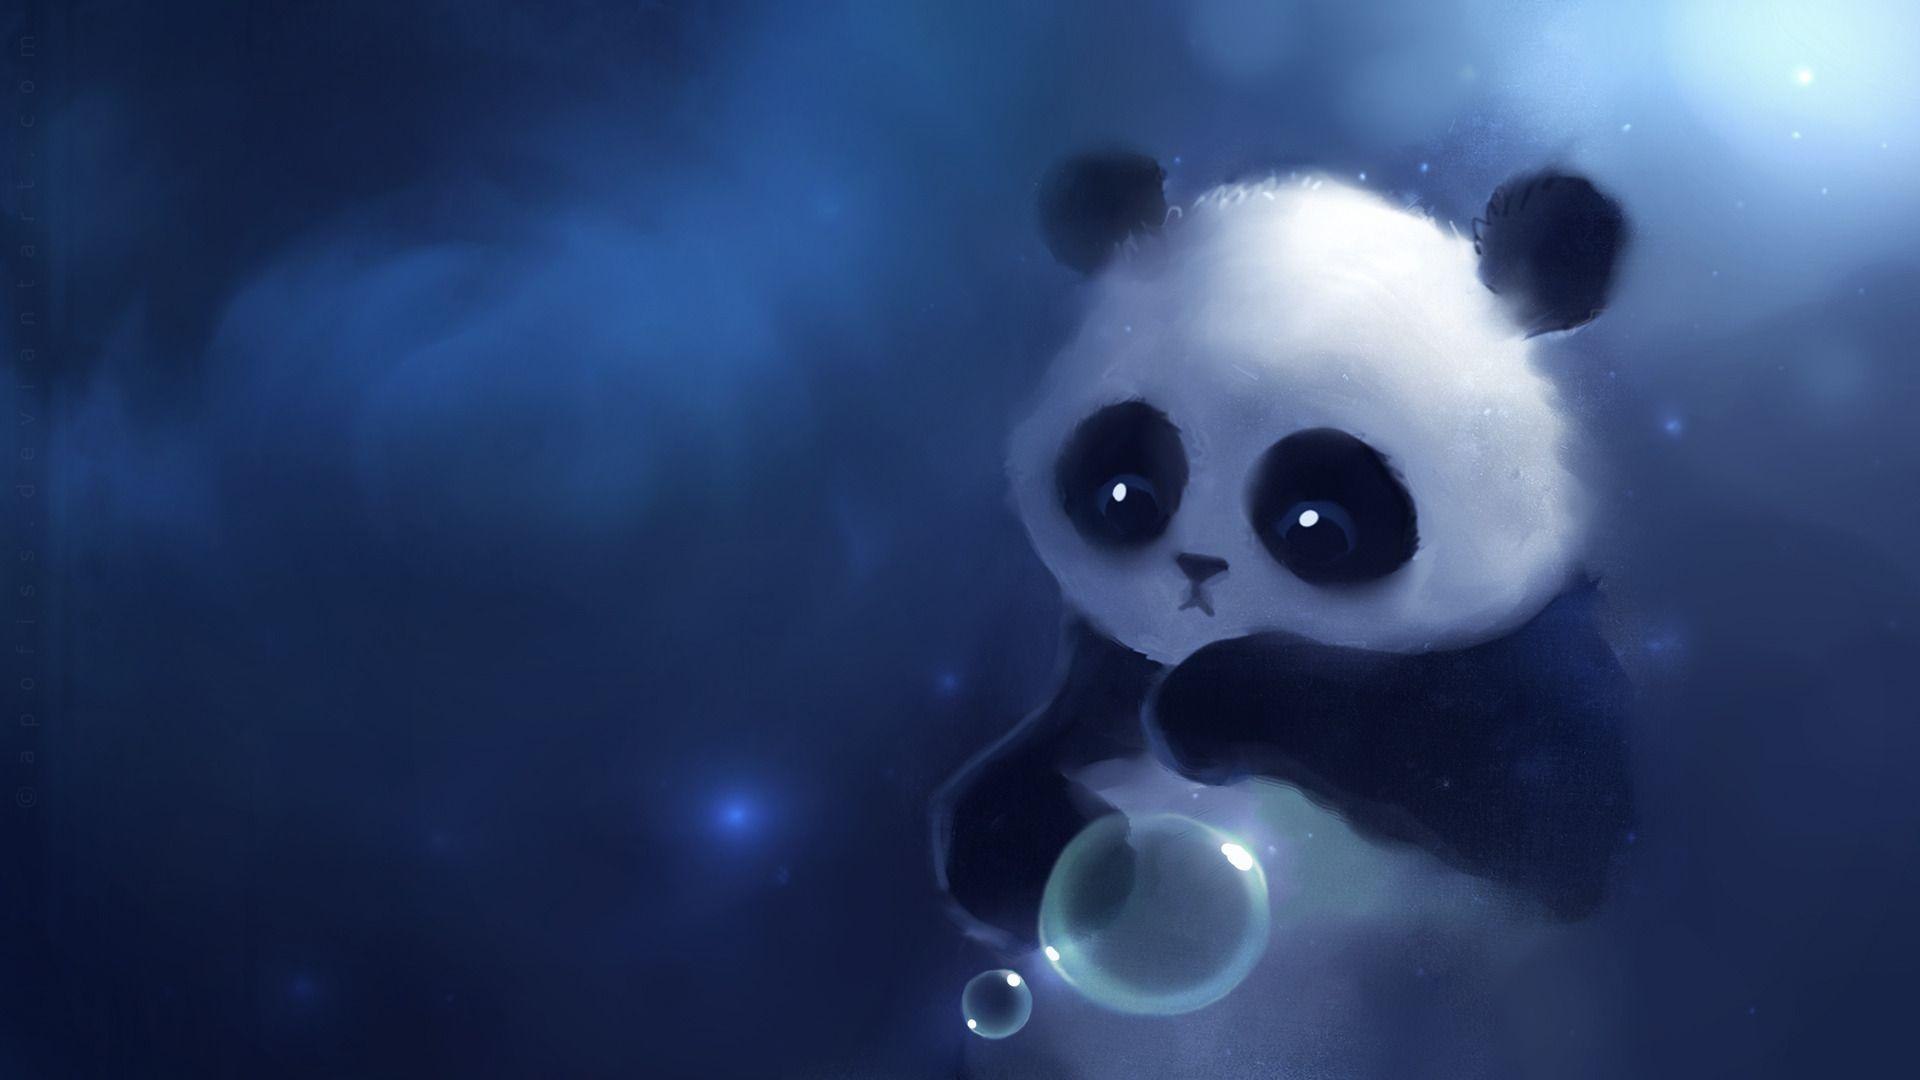 panda pictures hd wallpapers - photo #24